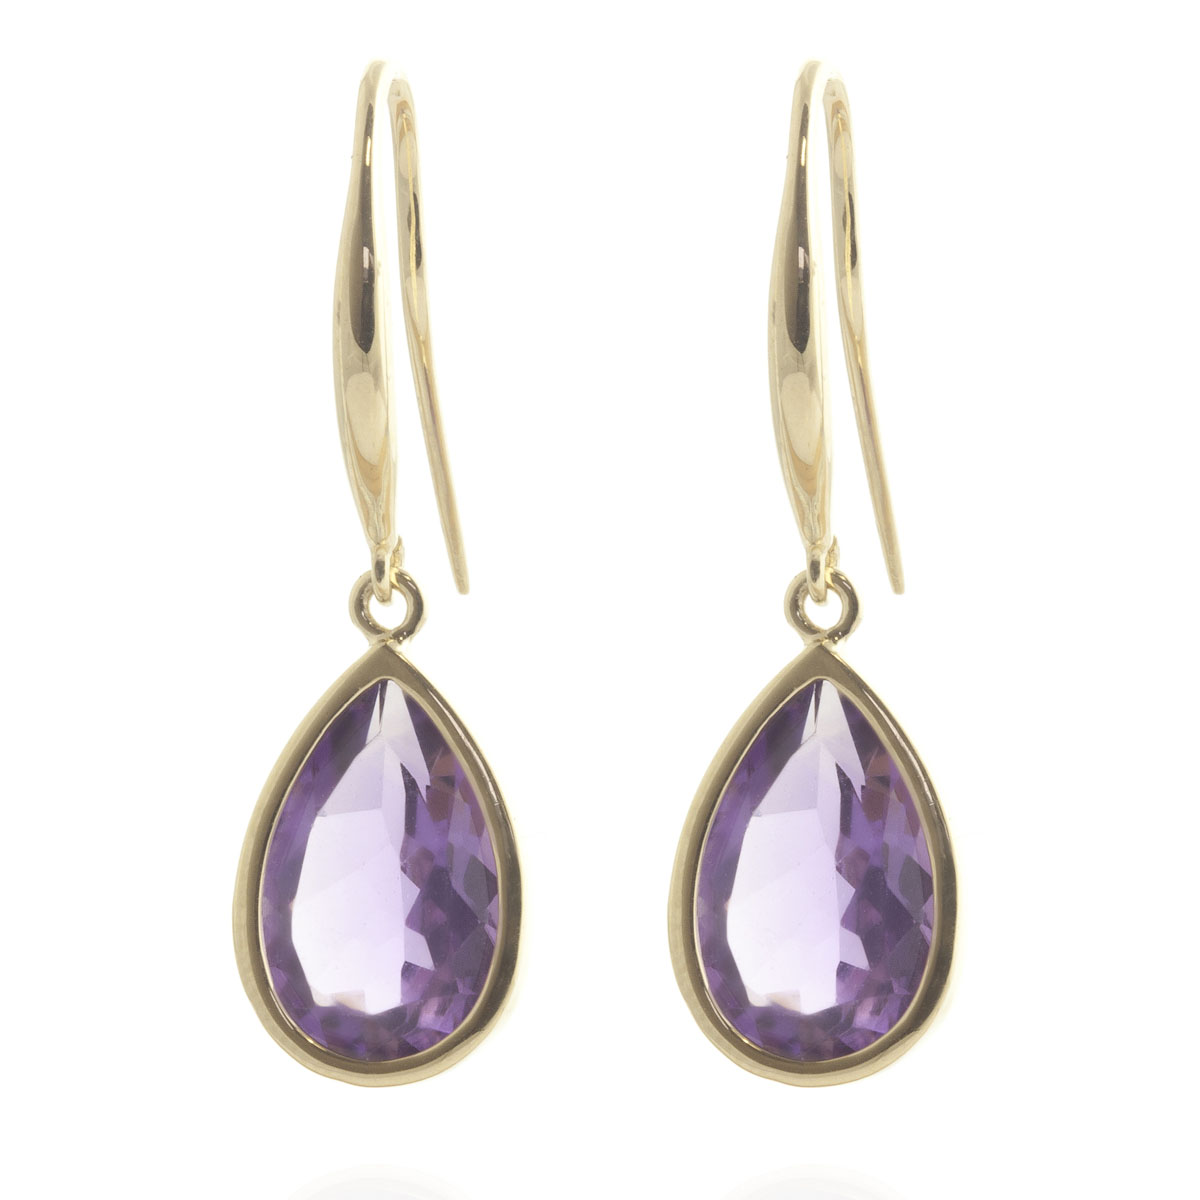 Amethyst Elliptical Drop Earrings 5 ctw in 9ct Gold